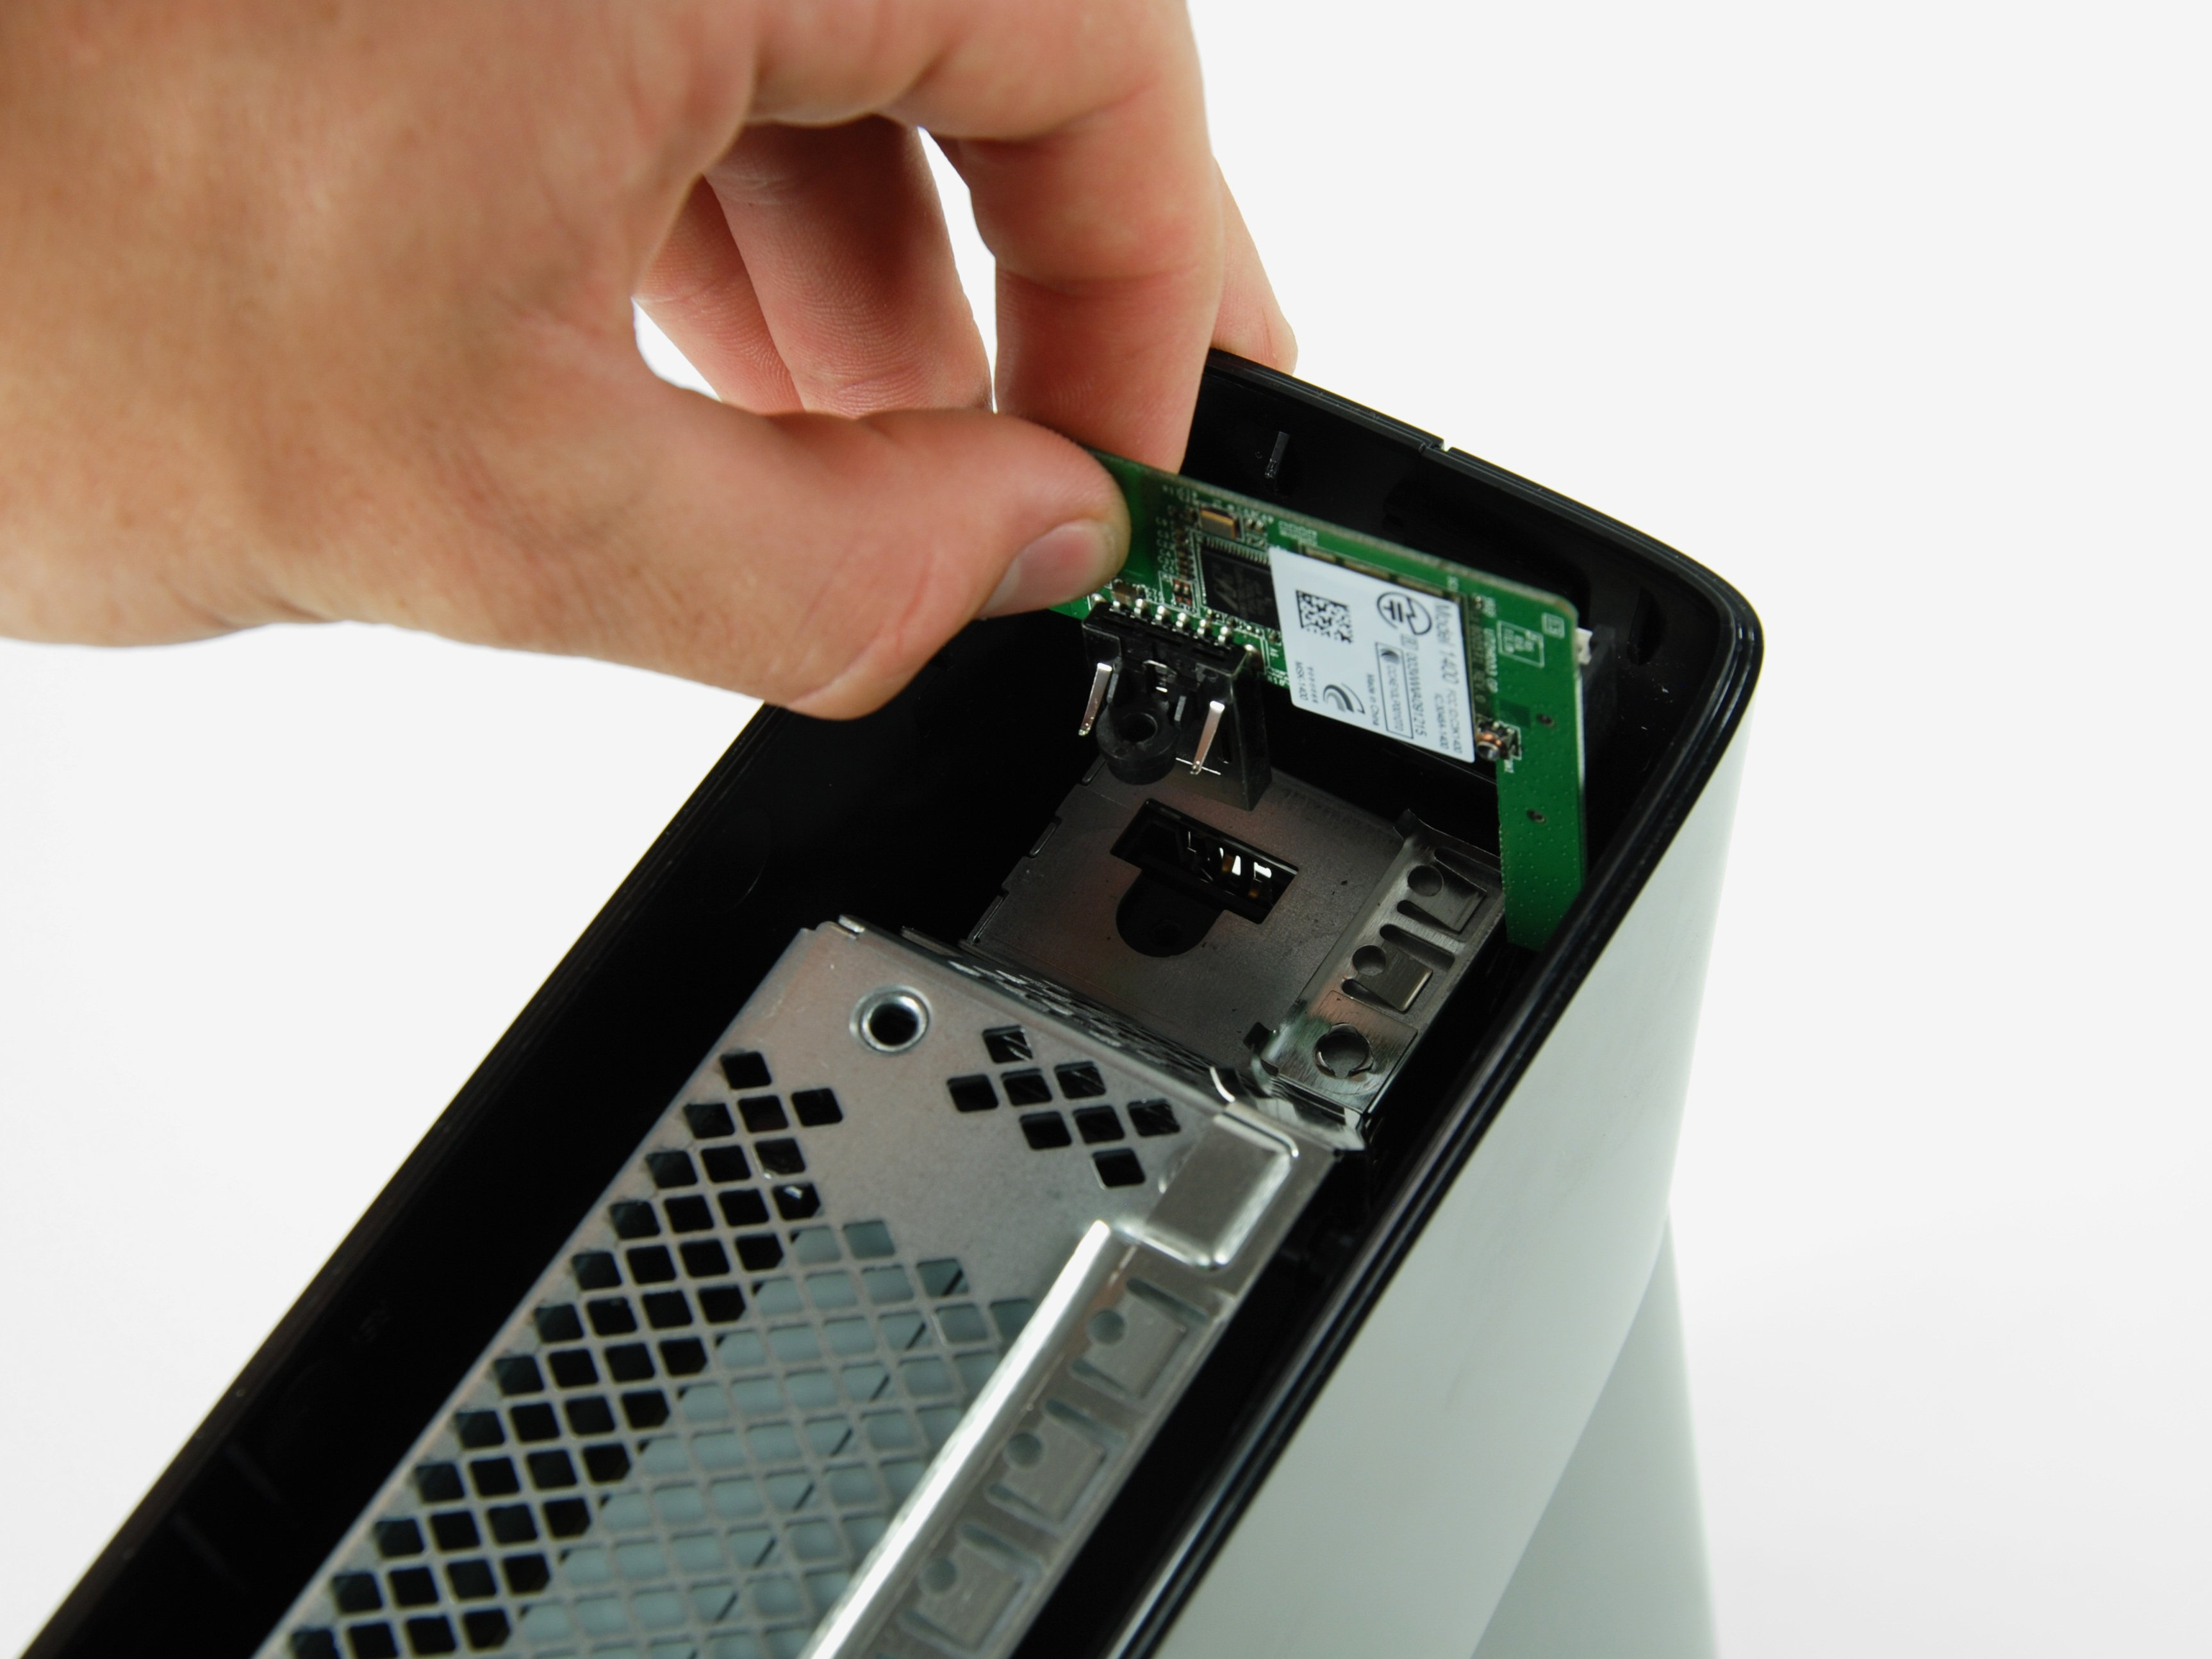 Xbox 360 S Wi-Fi Board Replacement - iFixit Repair Guide